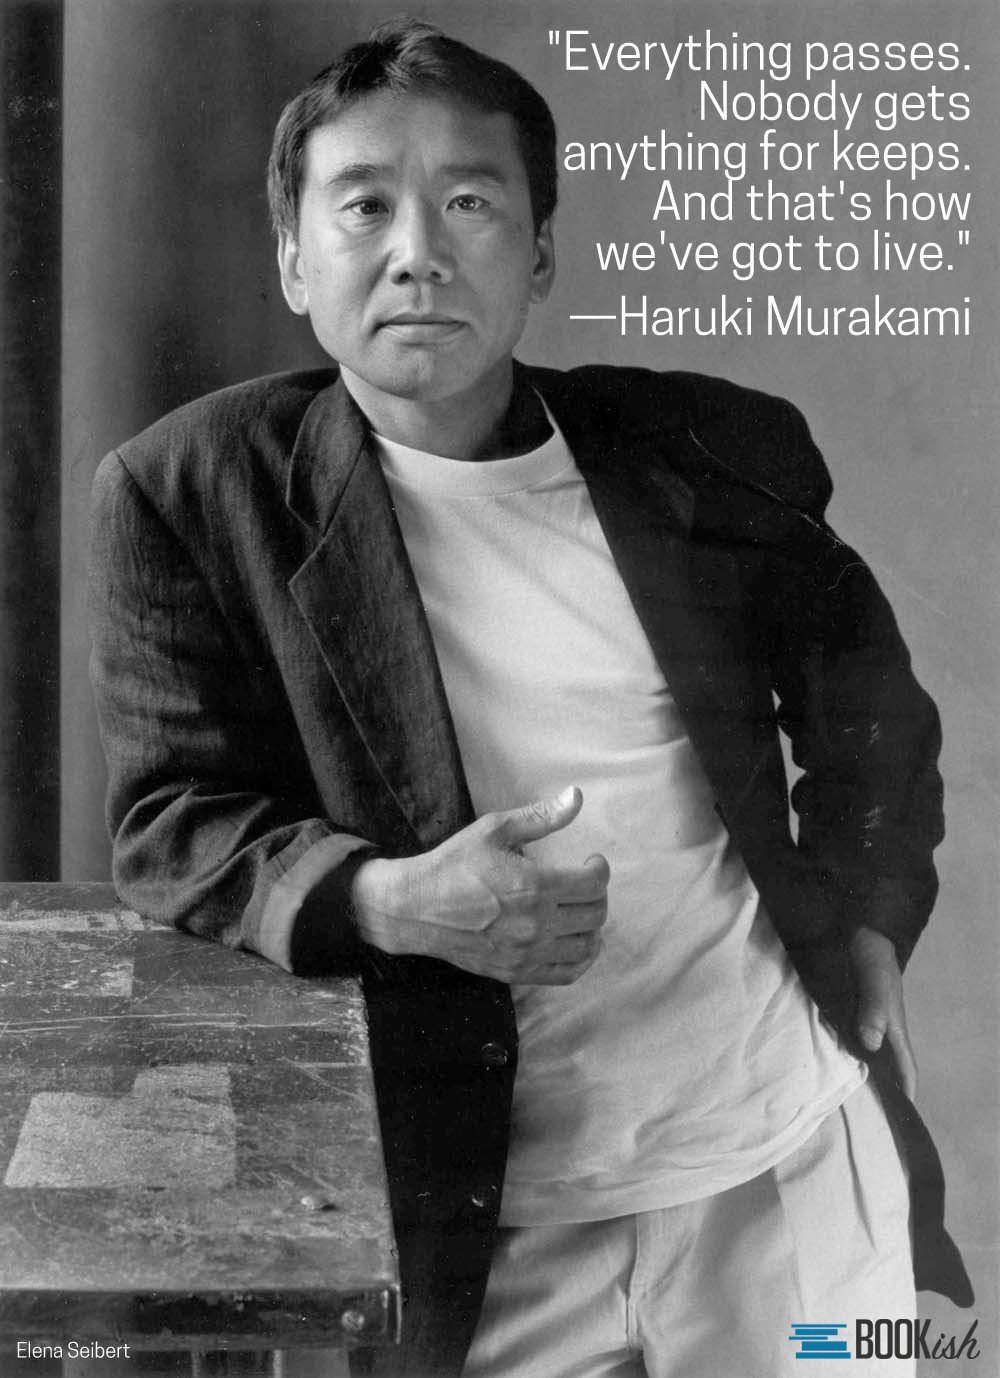 Wishing Haruki Murakami a happy birthday today! Which books of his are your favorites?